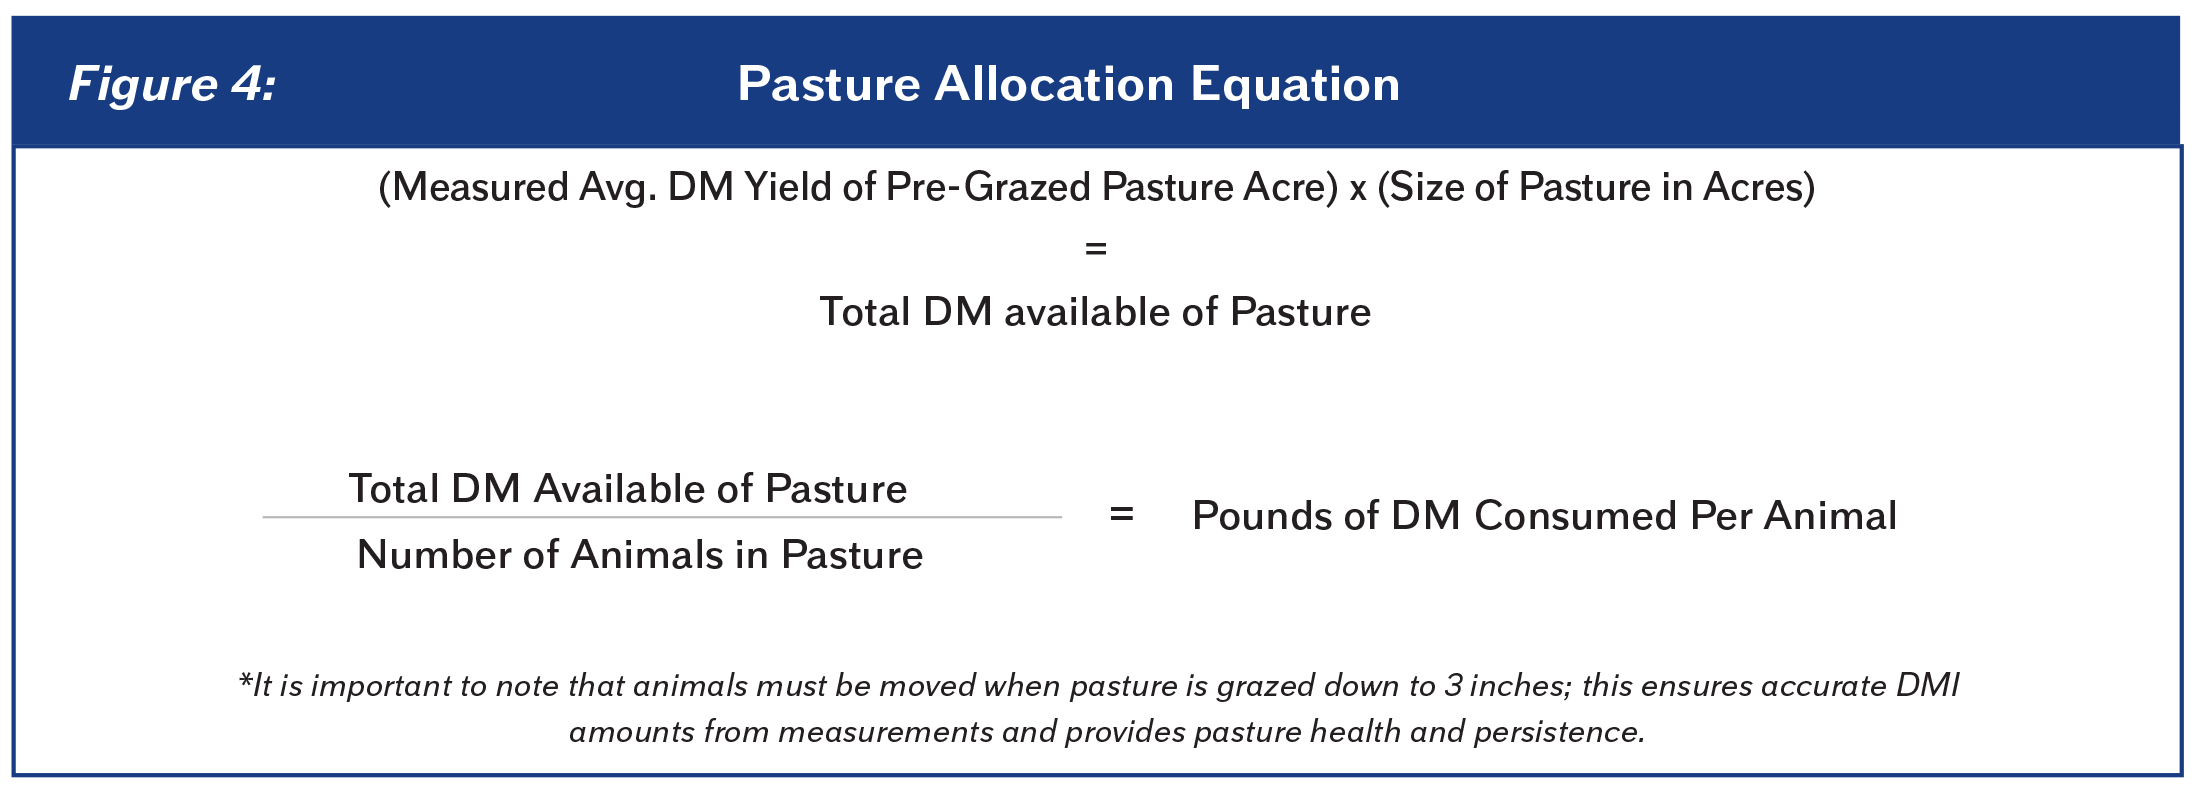 03Figure4PastureAllocationEquation